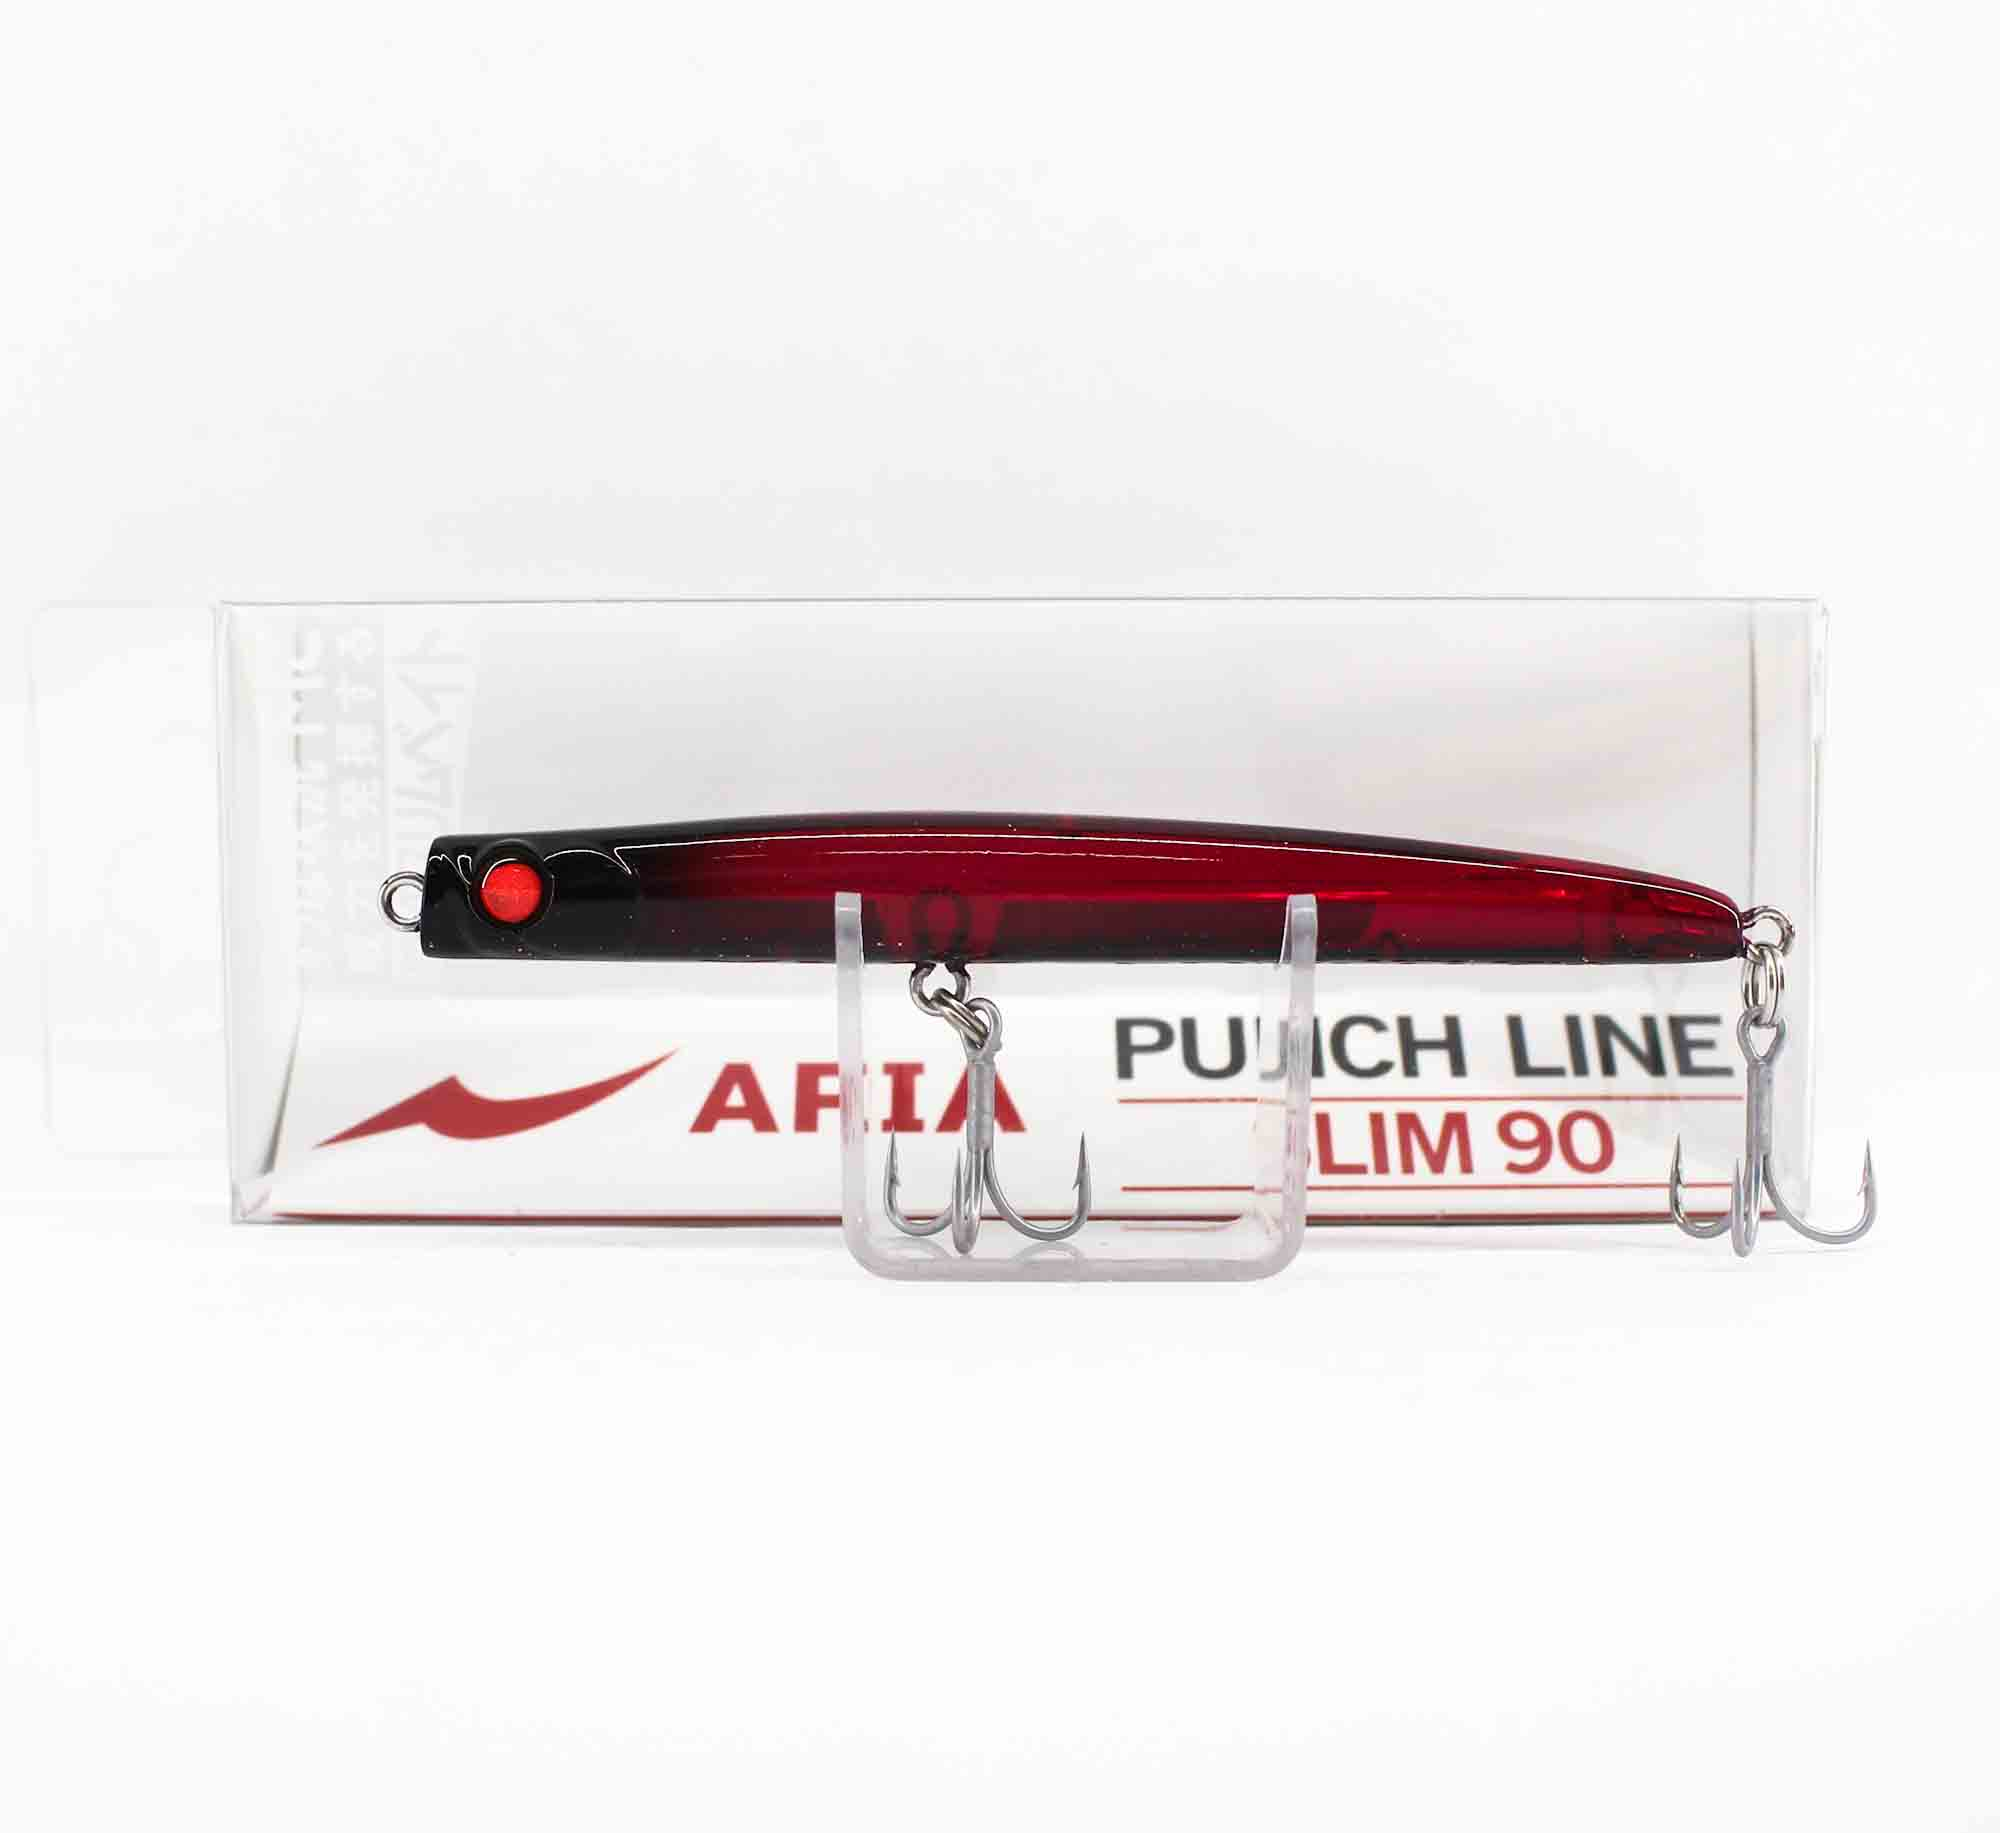 Apia Punch Line 90 Slim Sinking Pencil Lure 103 (7835)